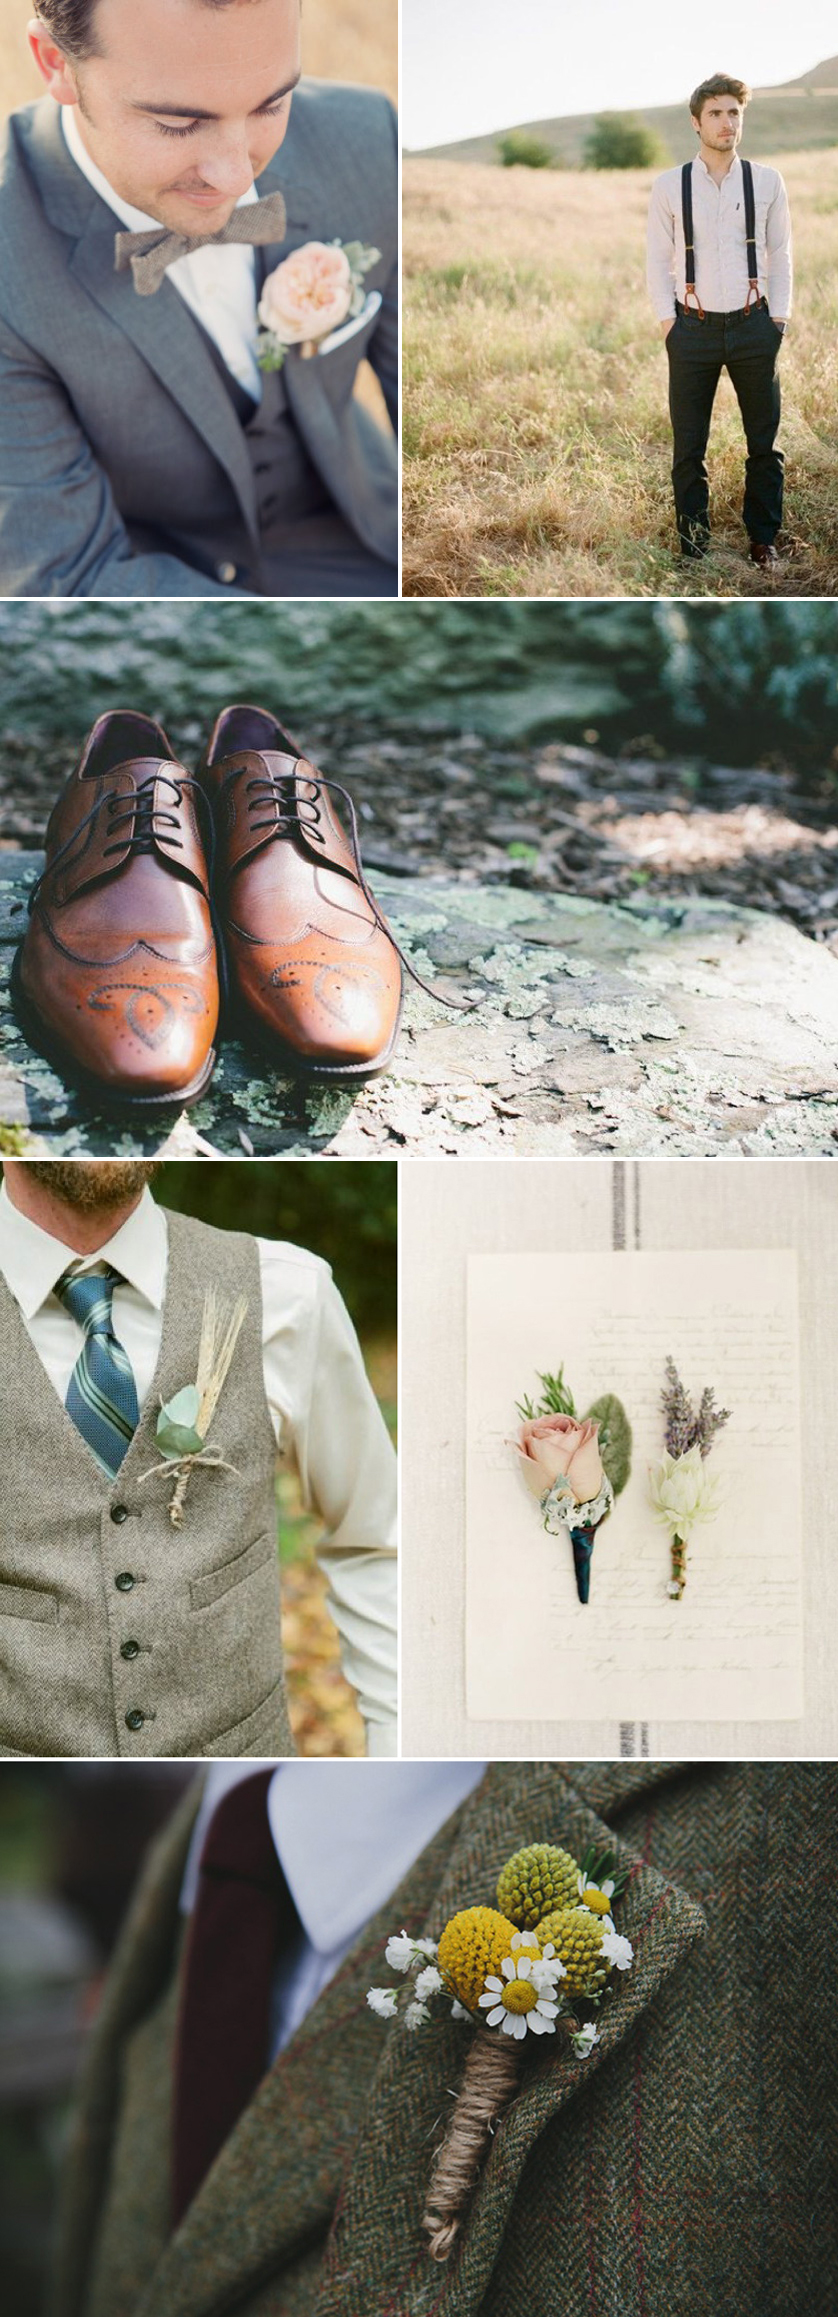 Coco Wedding Venues - Rustic Romance Wedding Style - Groom Fashion.